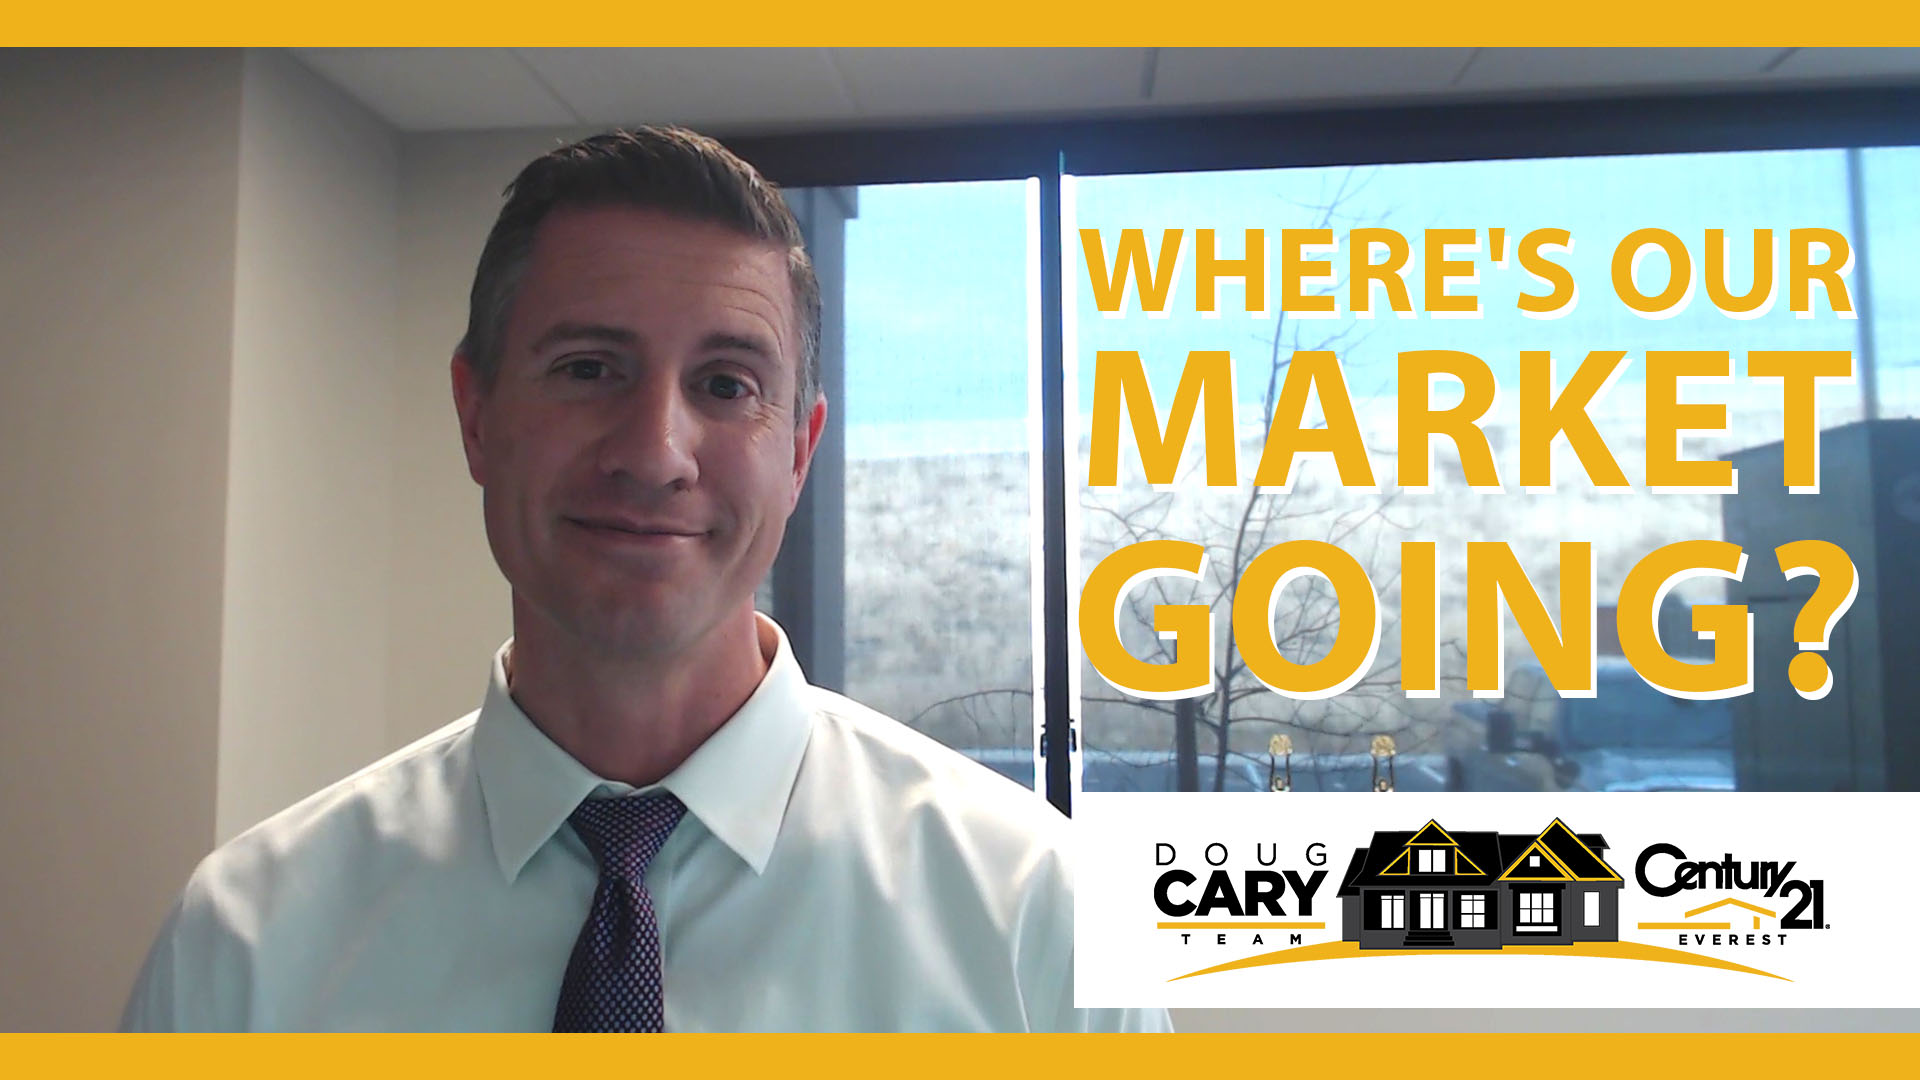 What's the Latest Word From Our Wasatch Front Market?